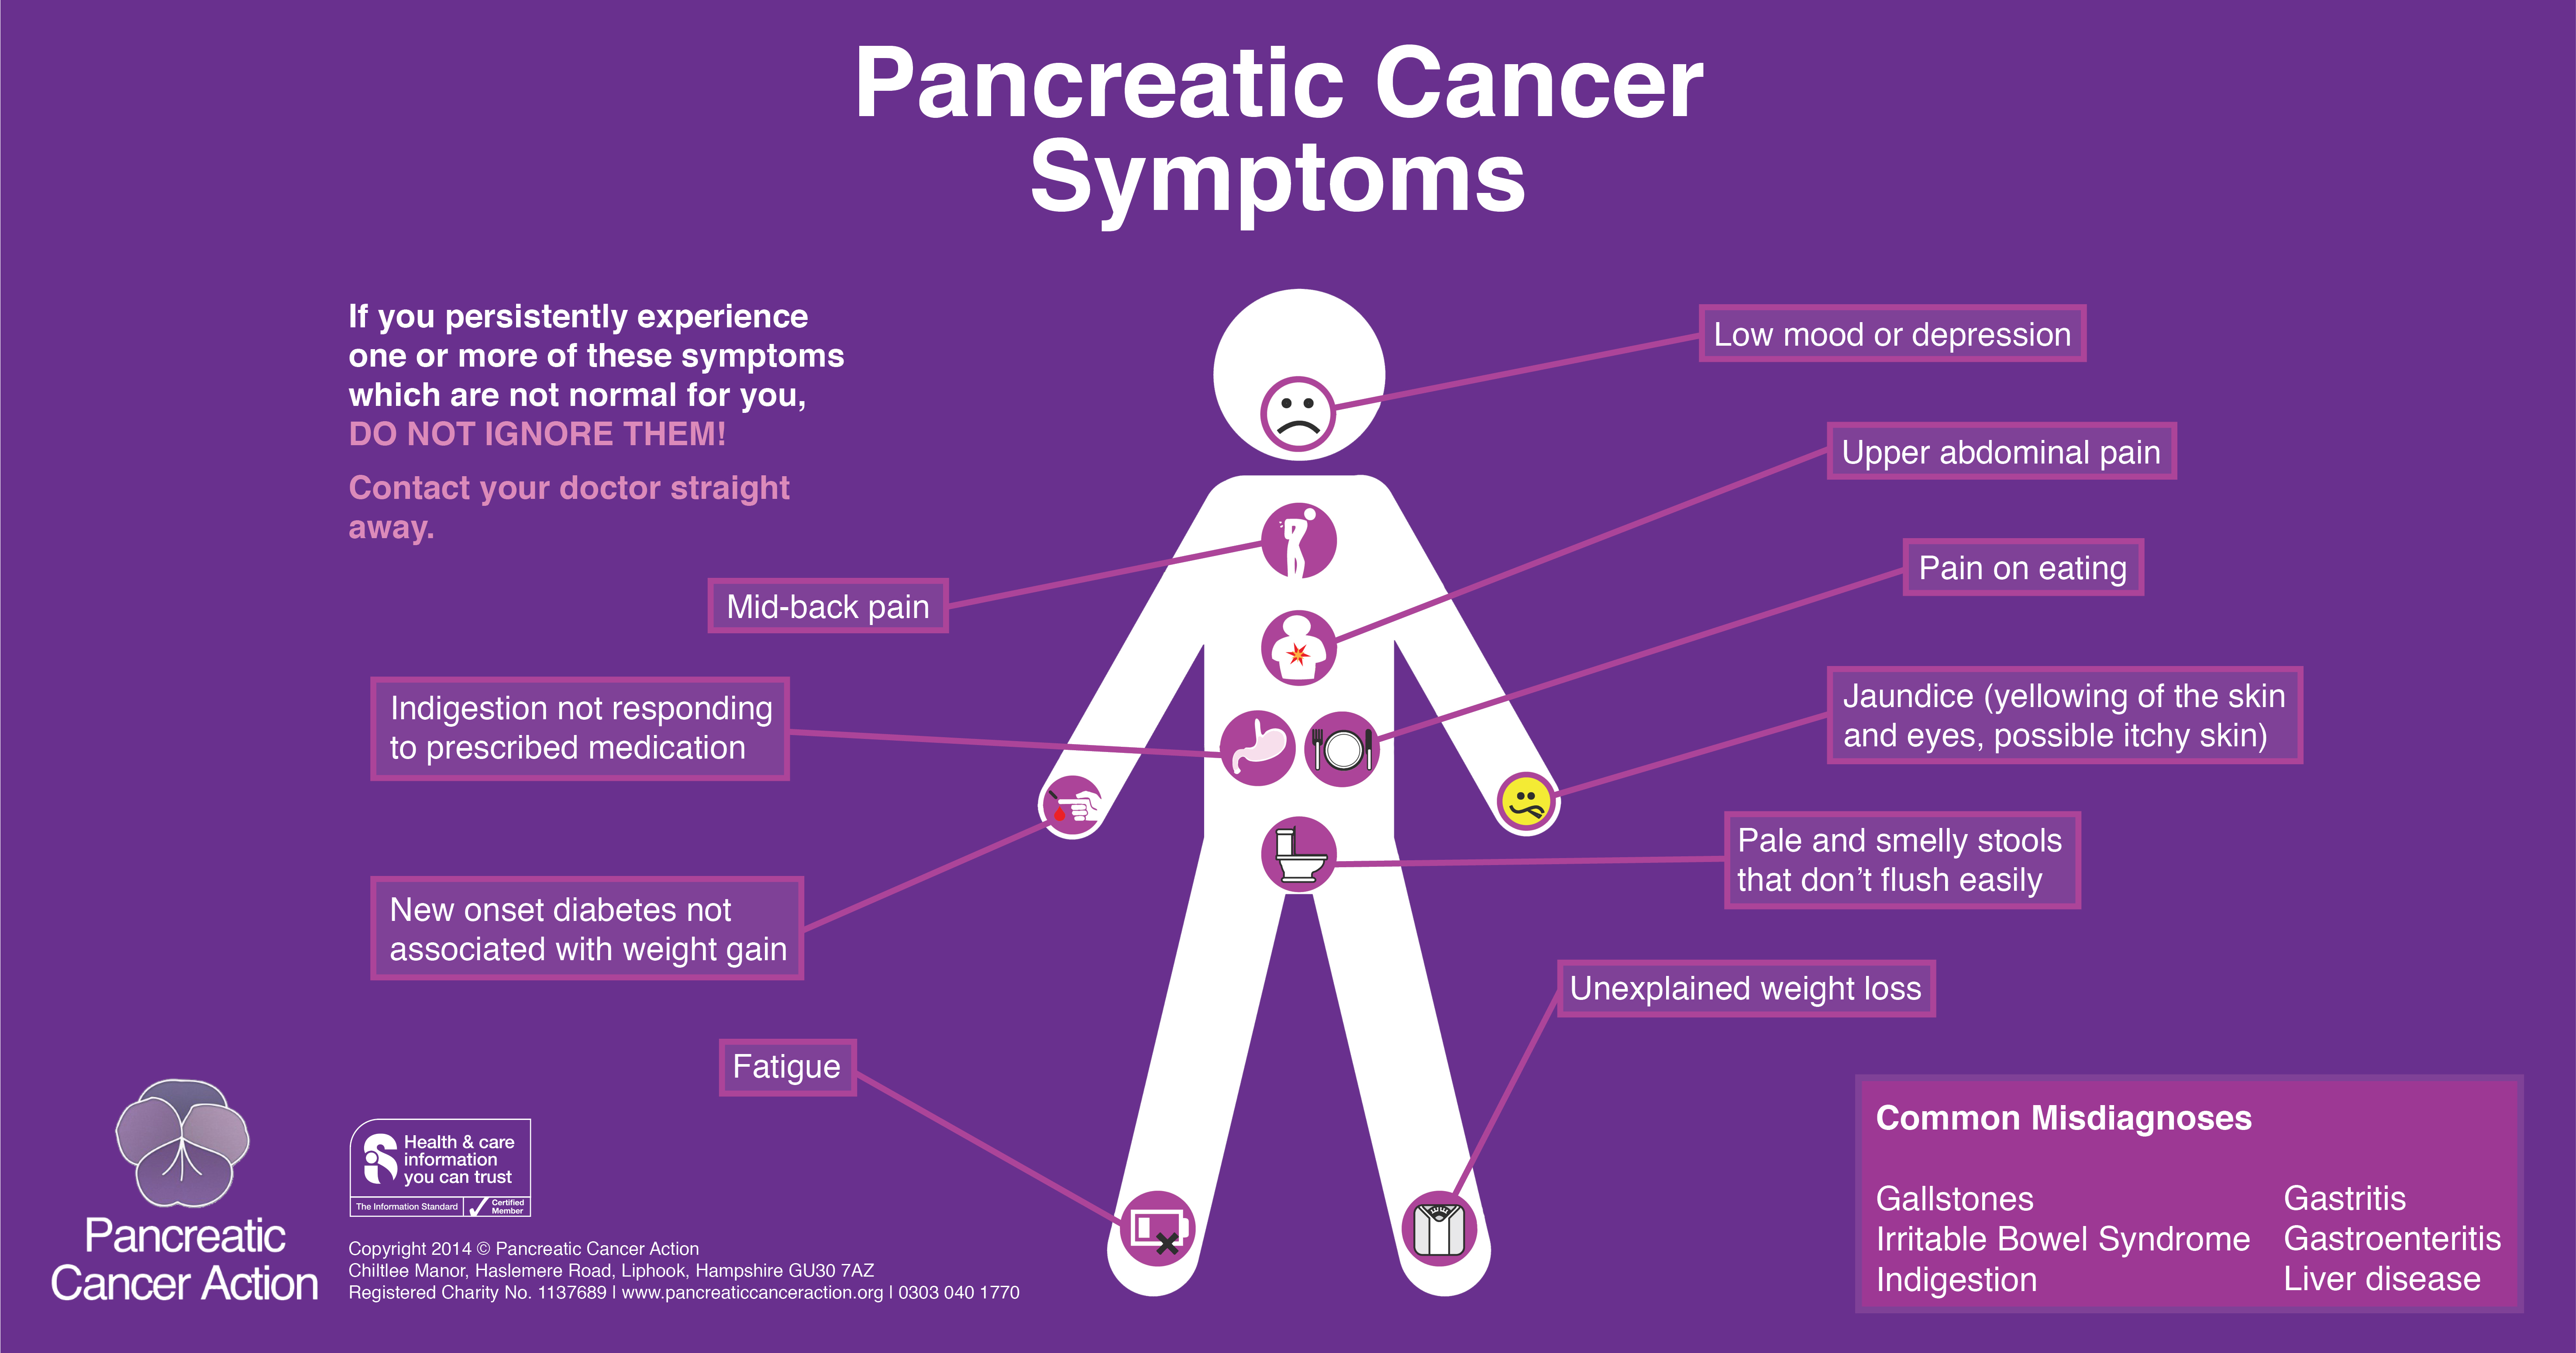 pancreatic cancer first symptoms were